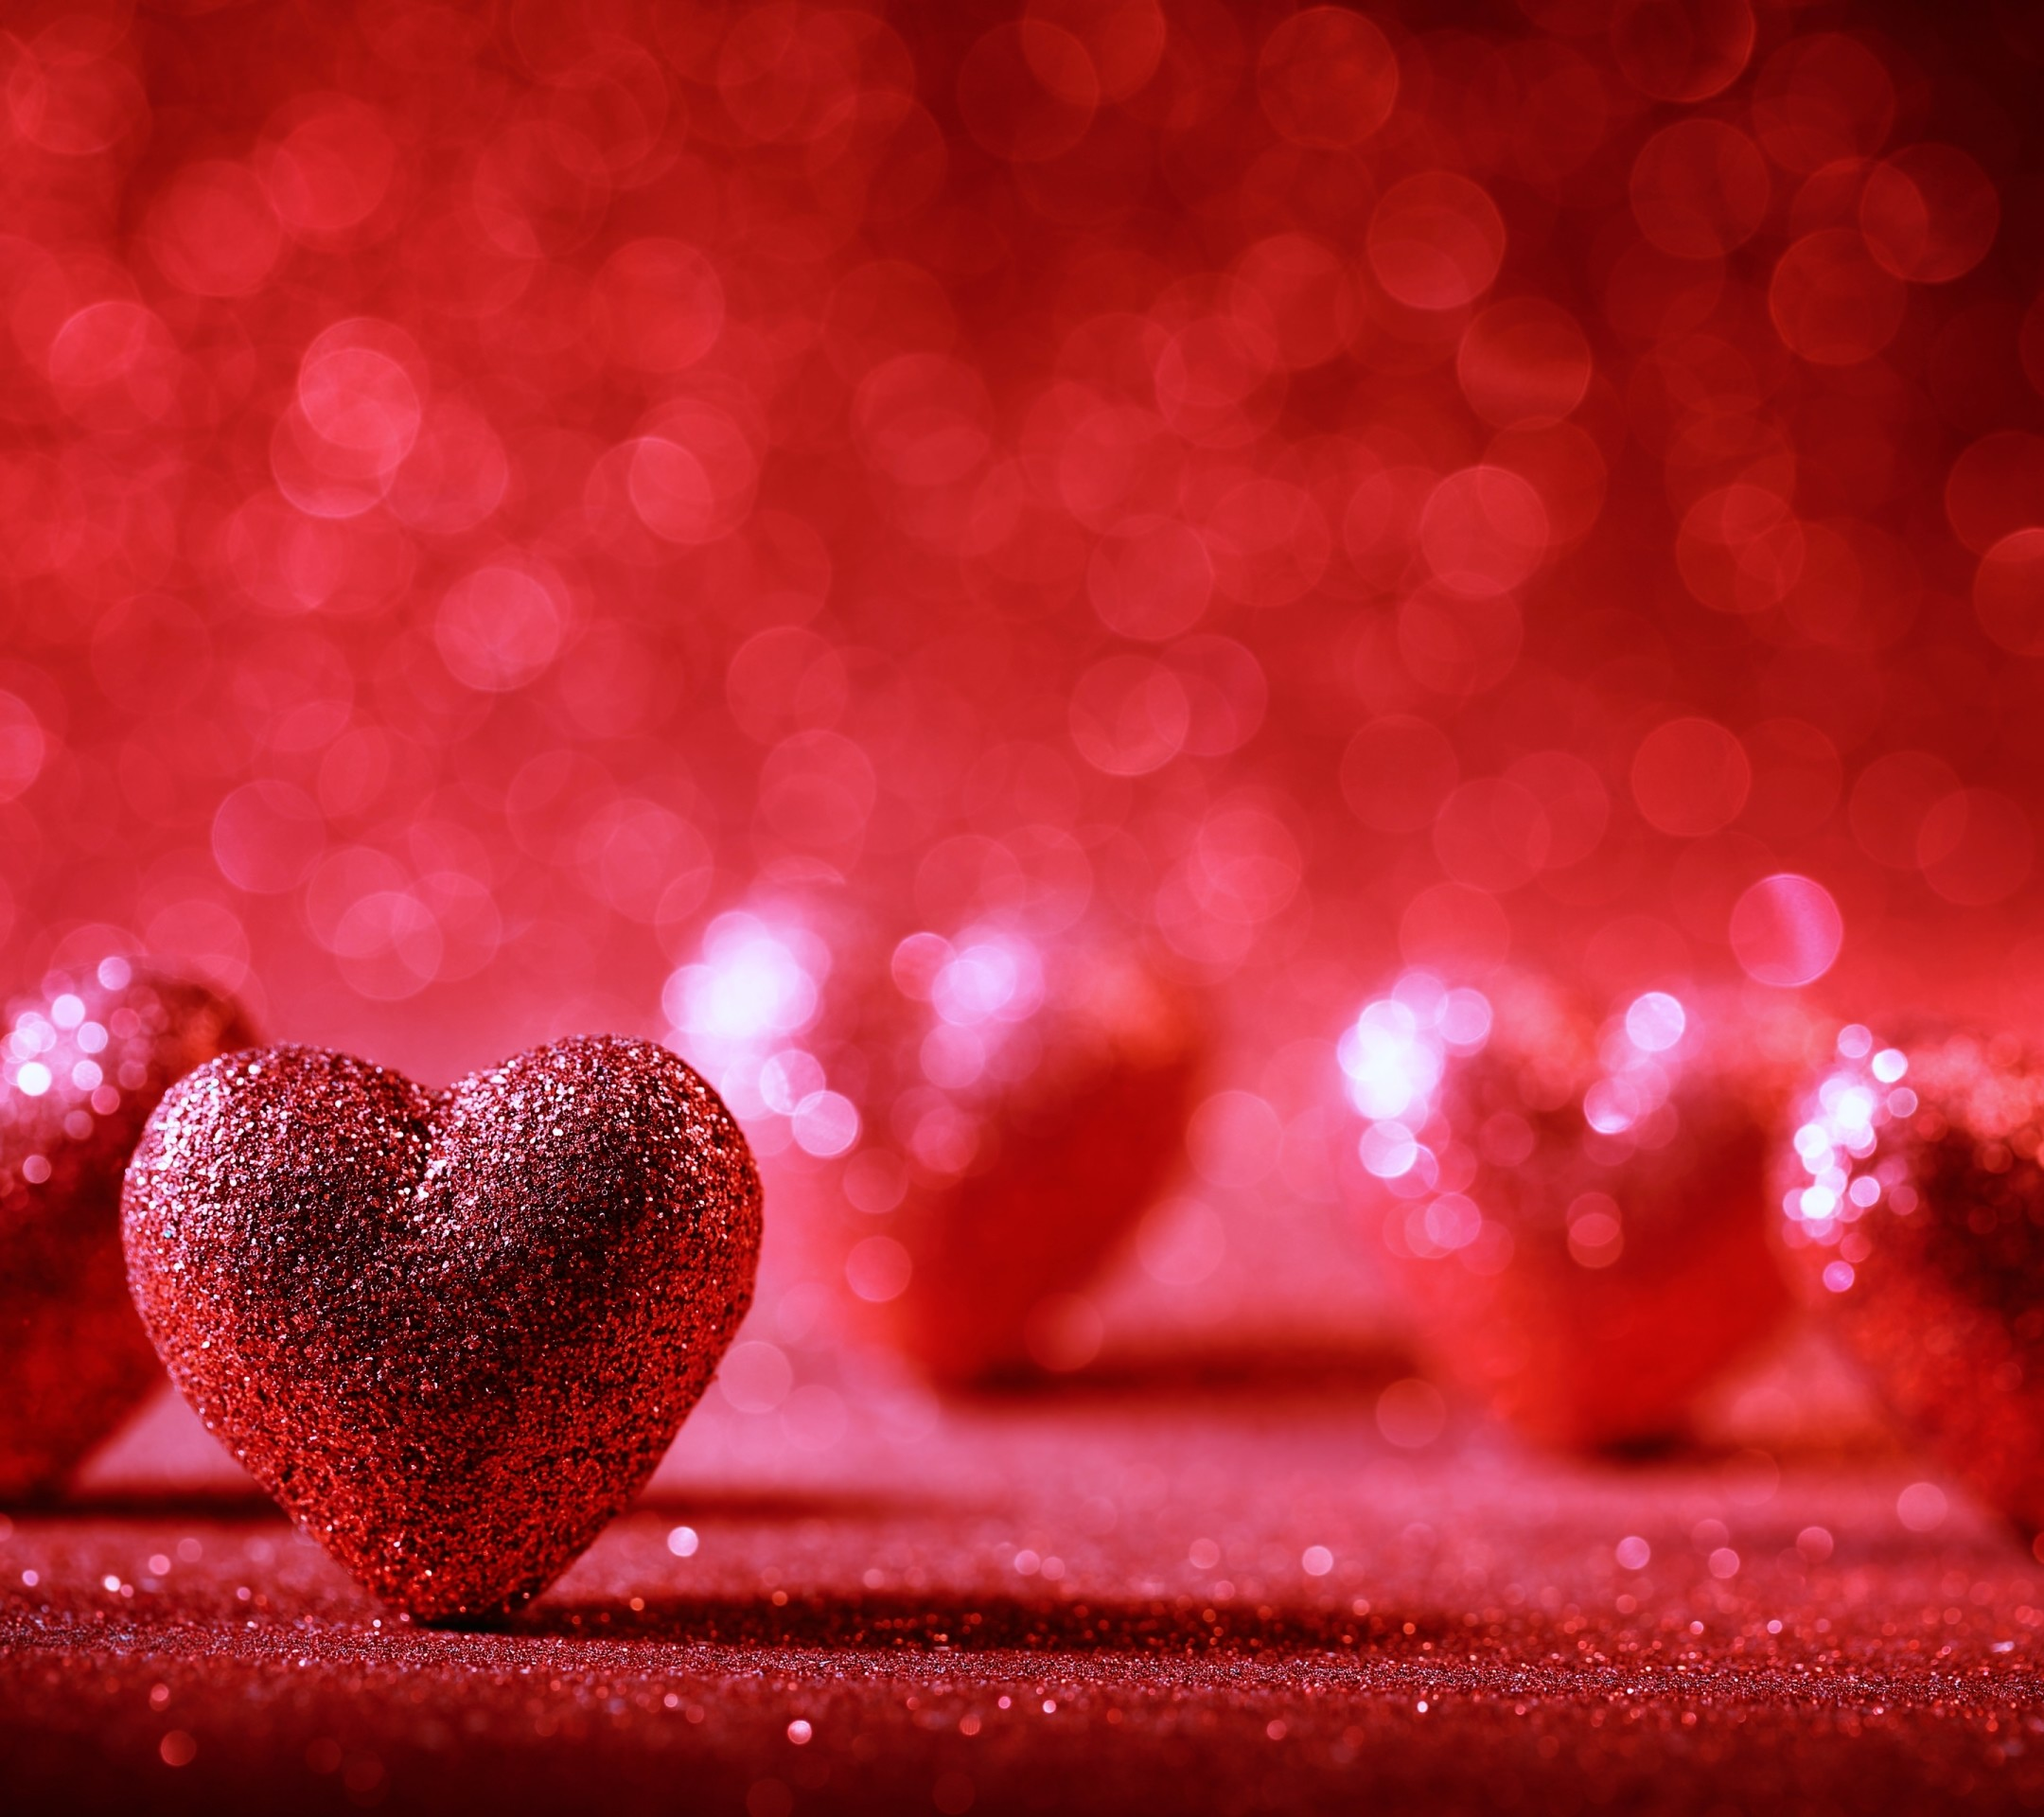 Red Heart – Tap to see love, love & more love wallpapers! – @